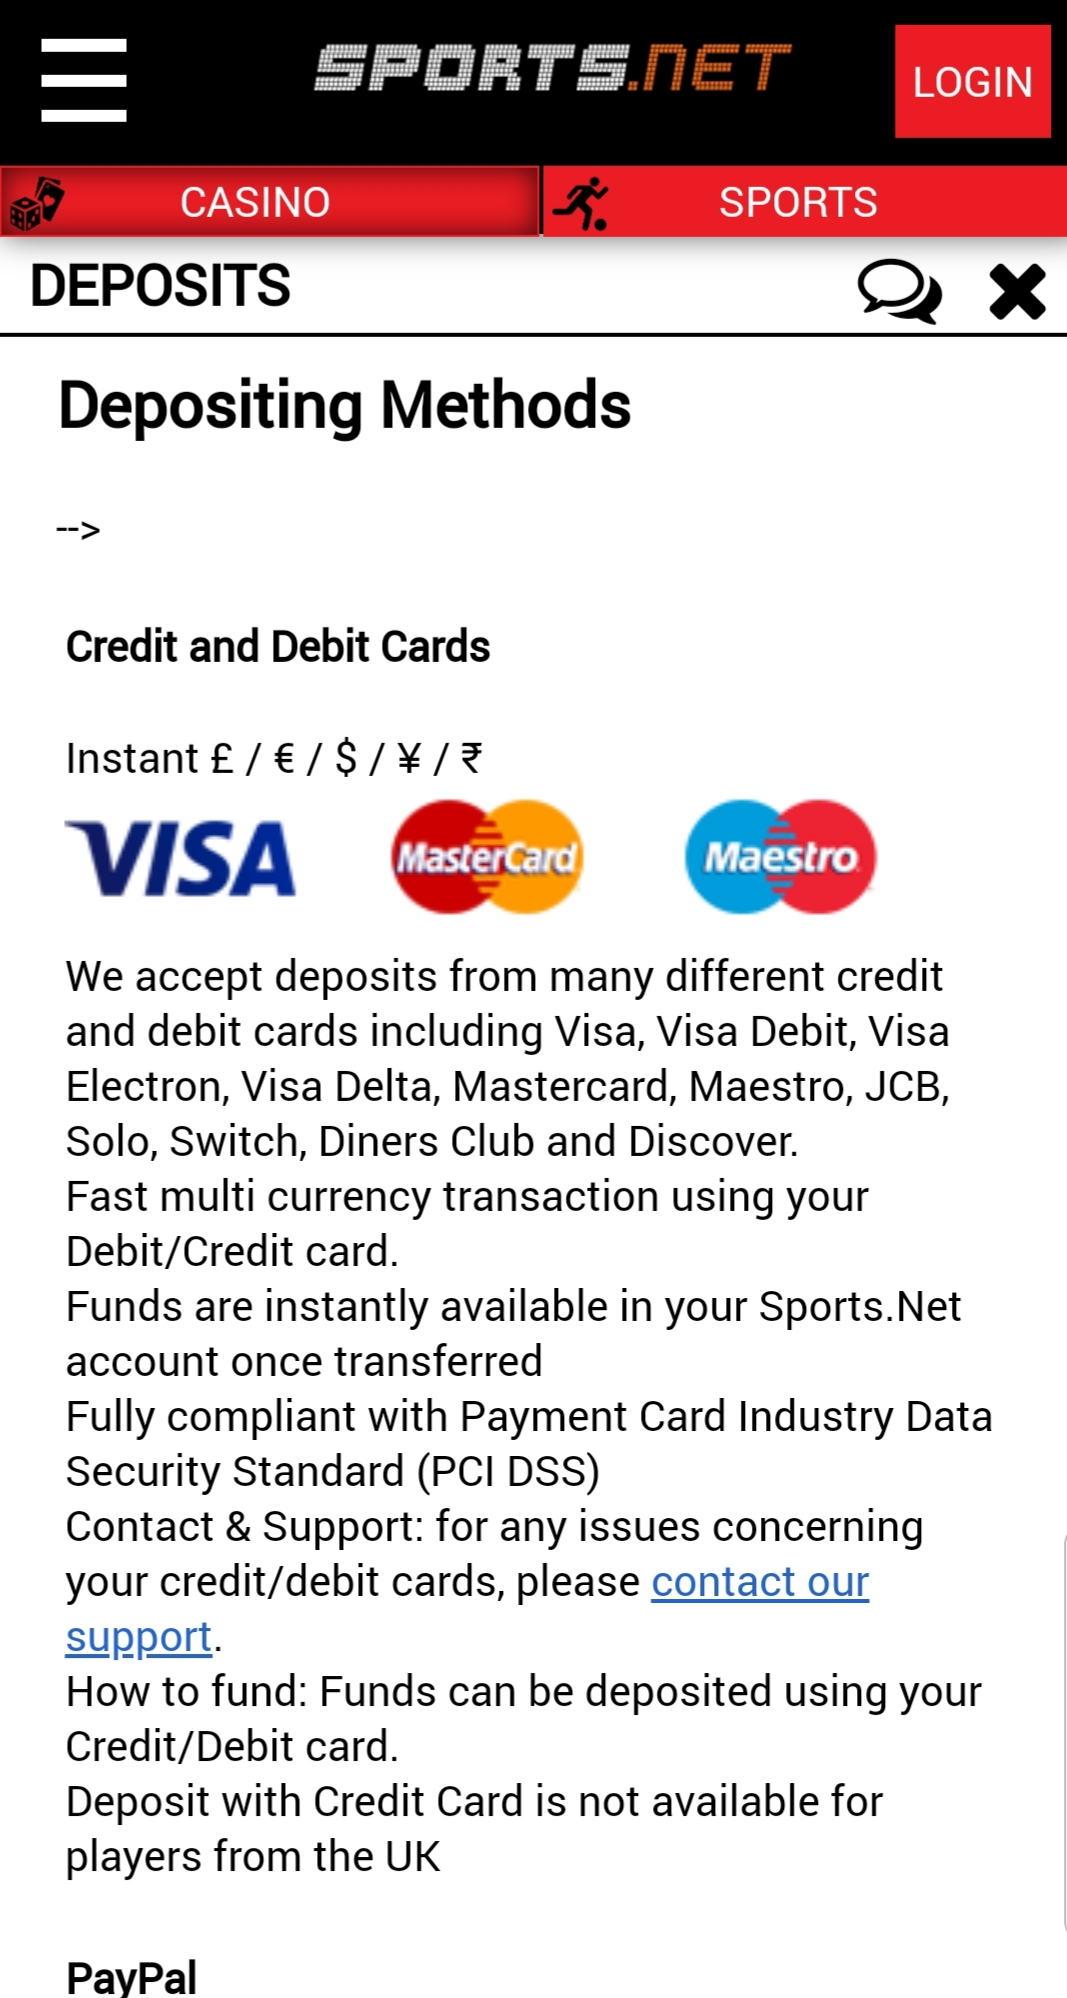 Sports Casino Payment Methods